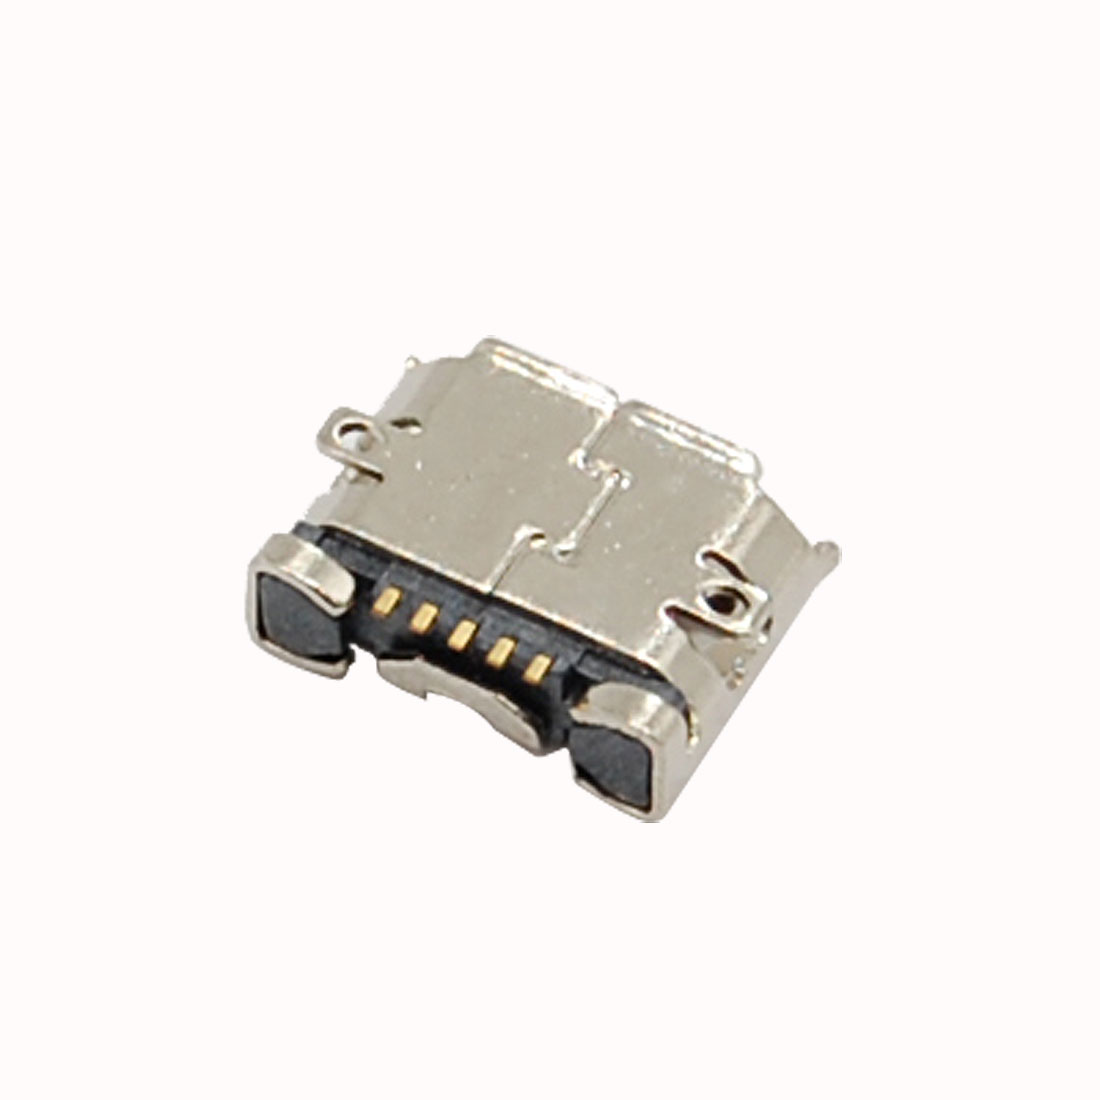 Replacement Data Port Connector for Nokia N78 8600